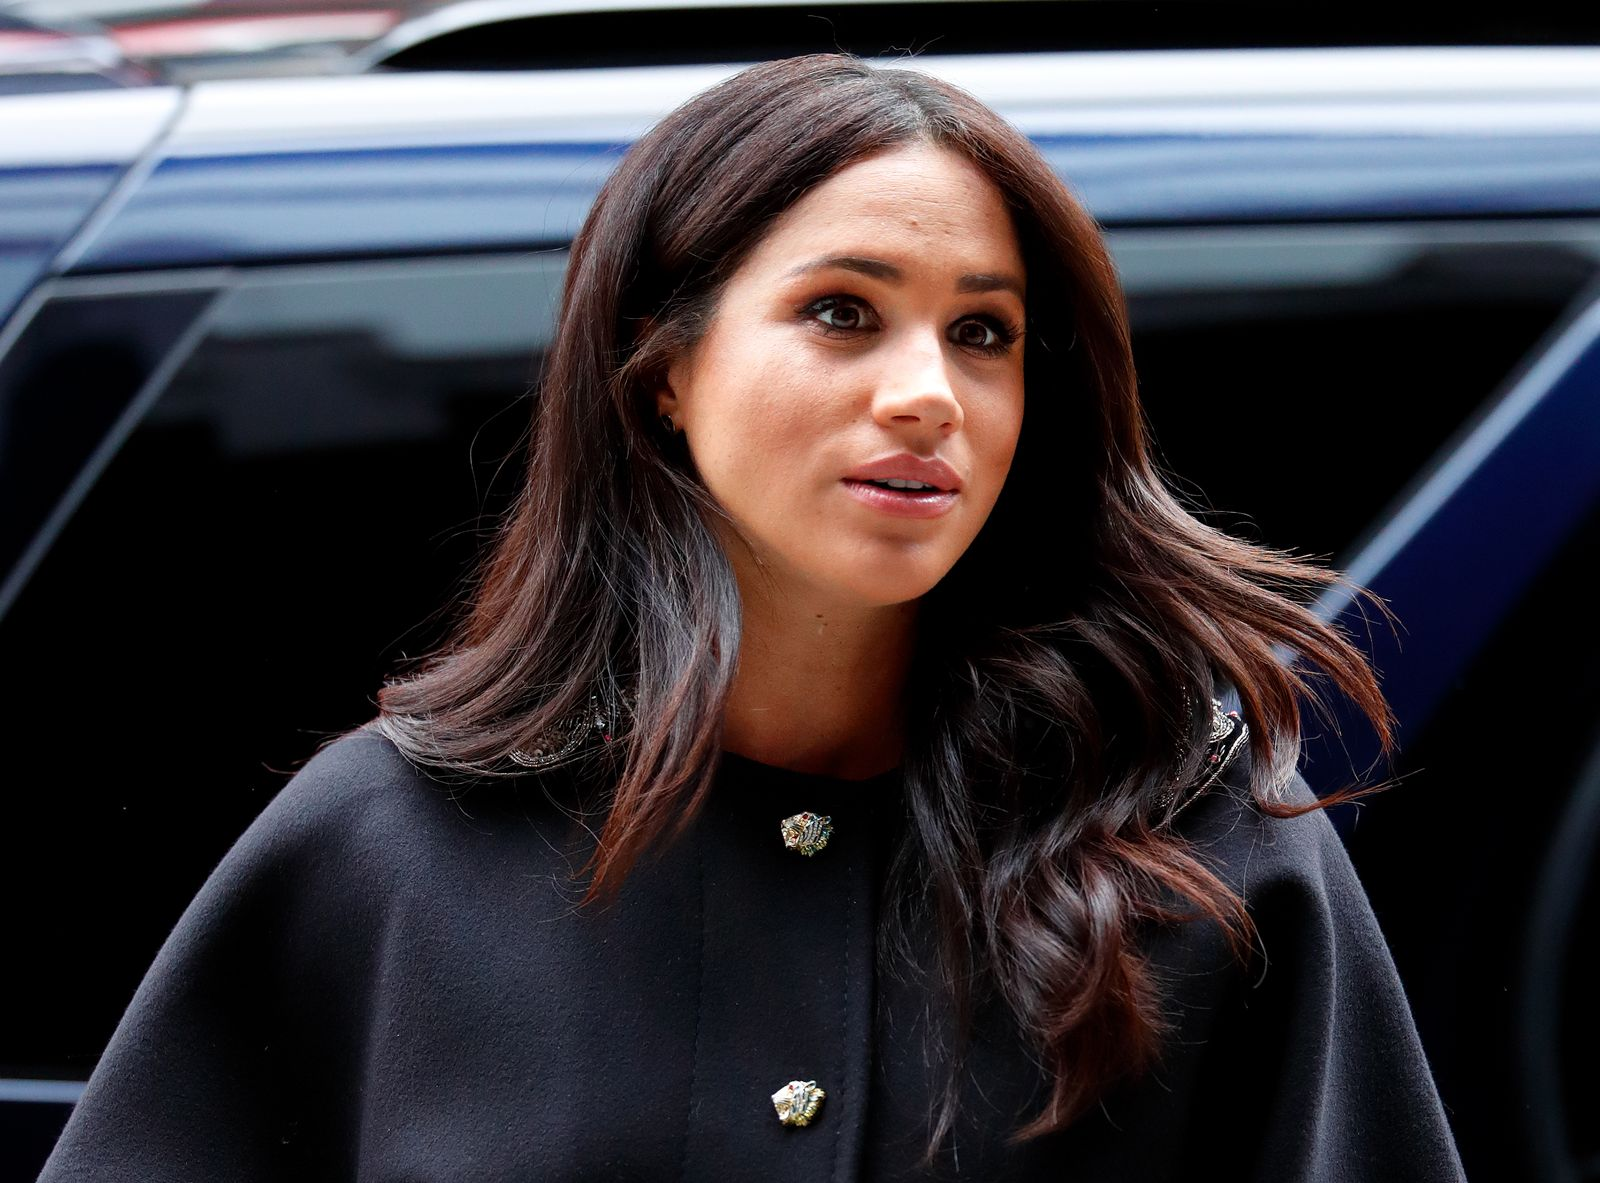 Duchess Meghan at New Zealand House on March 19, 2019, in London, England Photo Max Mumby Getty Images